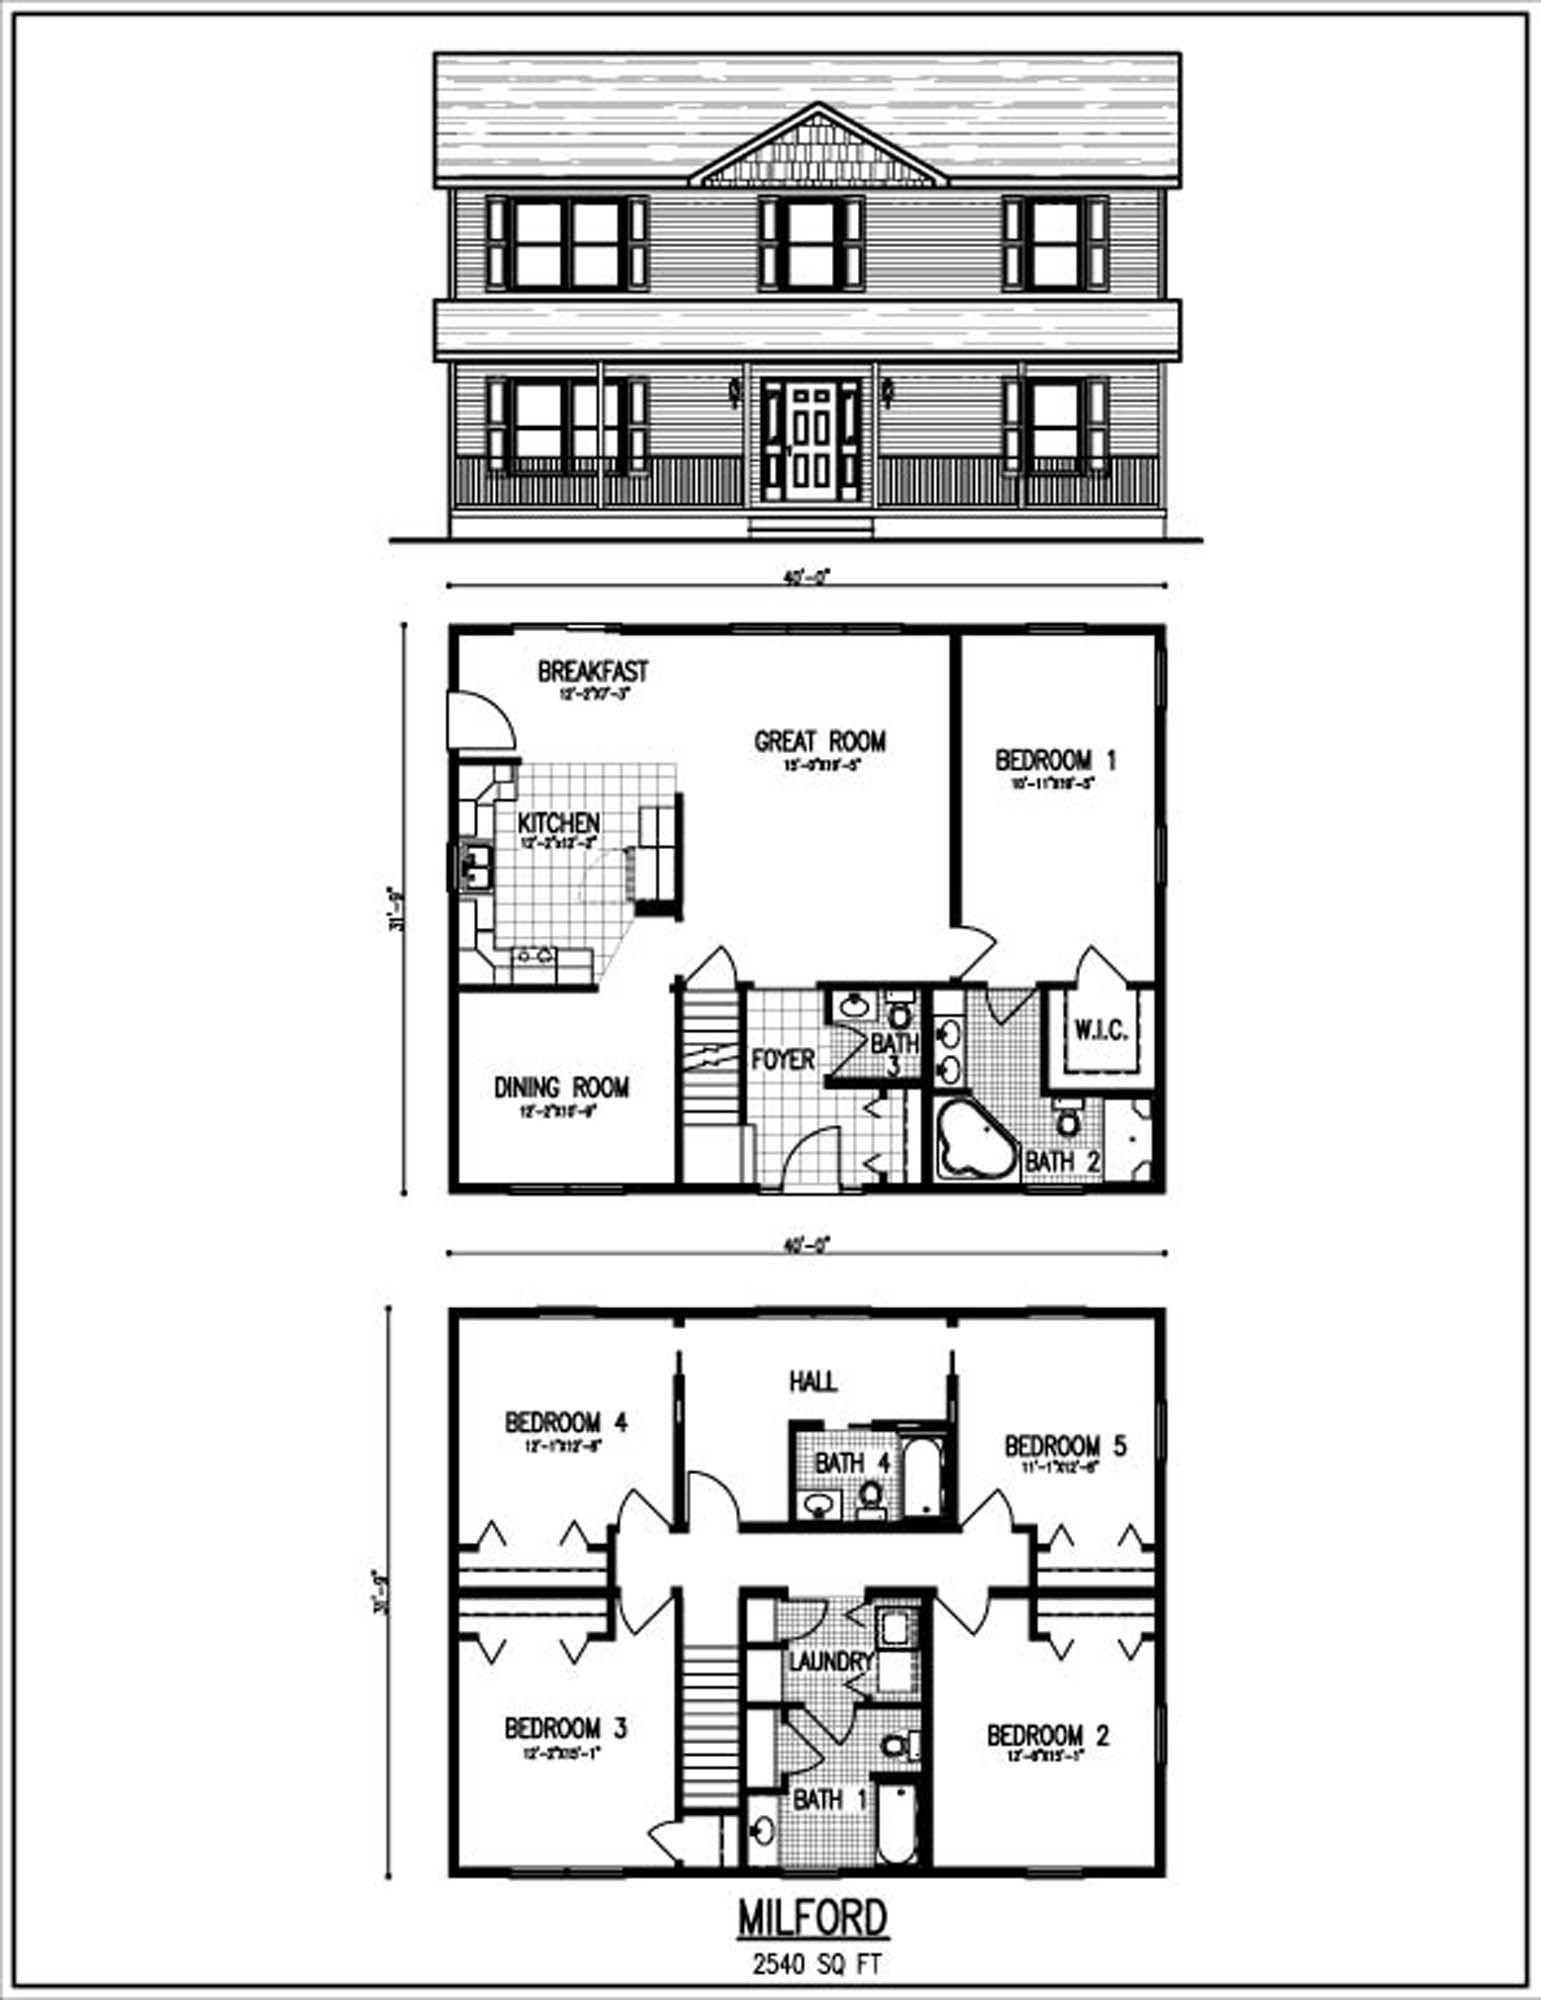 Open Floor House Plans Two Story | //viajesairmar.com ... on basement house design, one storey modern house design, slant roof house design, 3-story house design, 4 bedrooms house design, 2 floor house design, 4 story building design, 3-bedroom design, bungalow house design, 2 story house design, small garden house design, 1 floor house design, kitchen house design, 4 rooms house design,